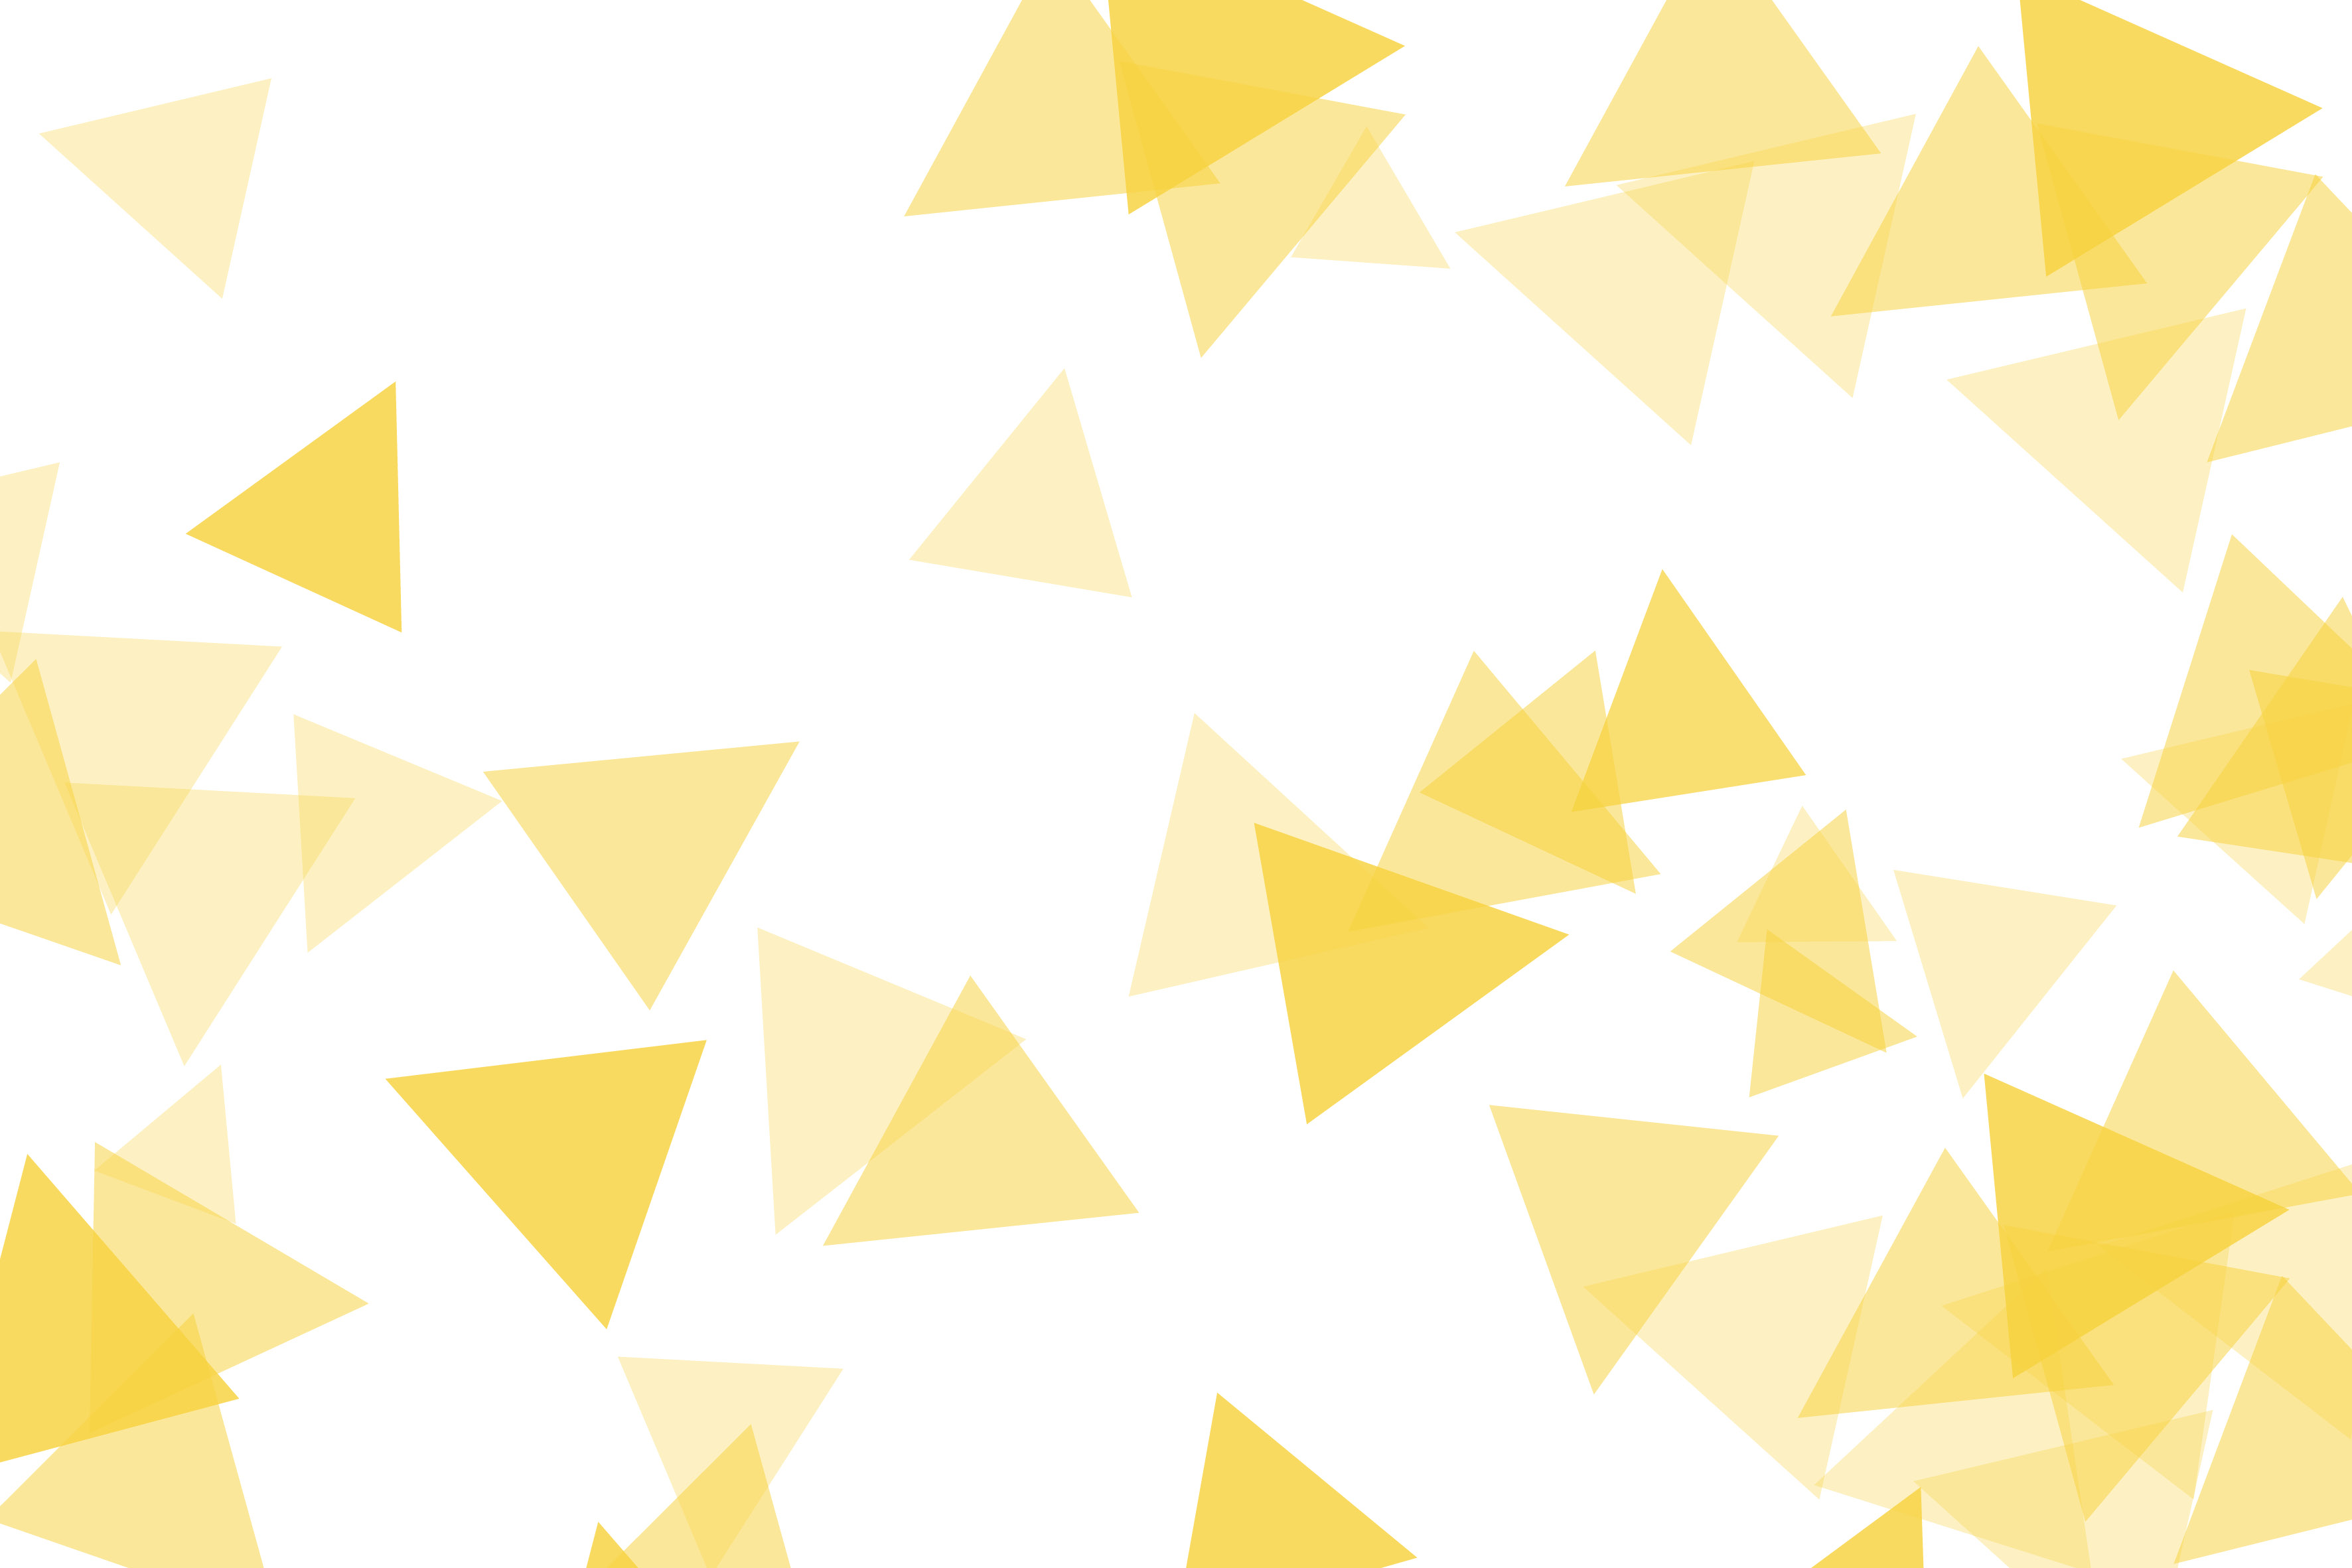 An abstract image of overlapping yellow triangles.